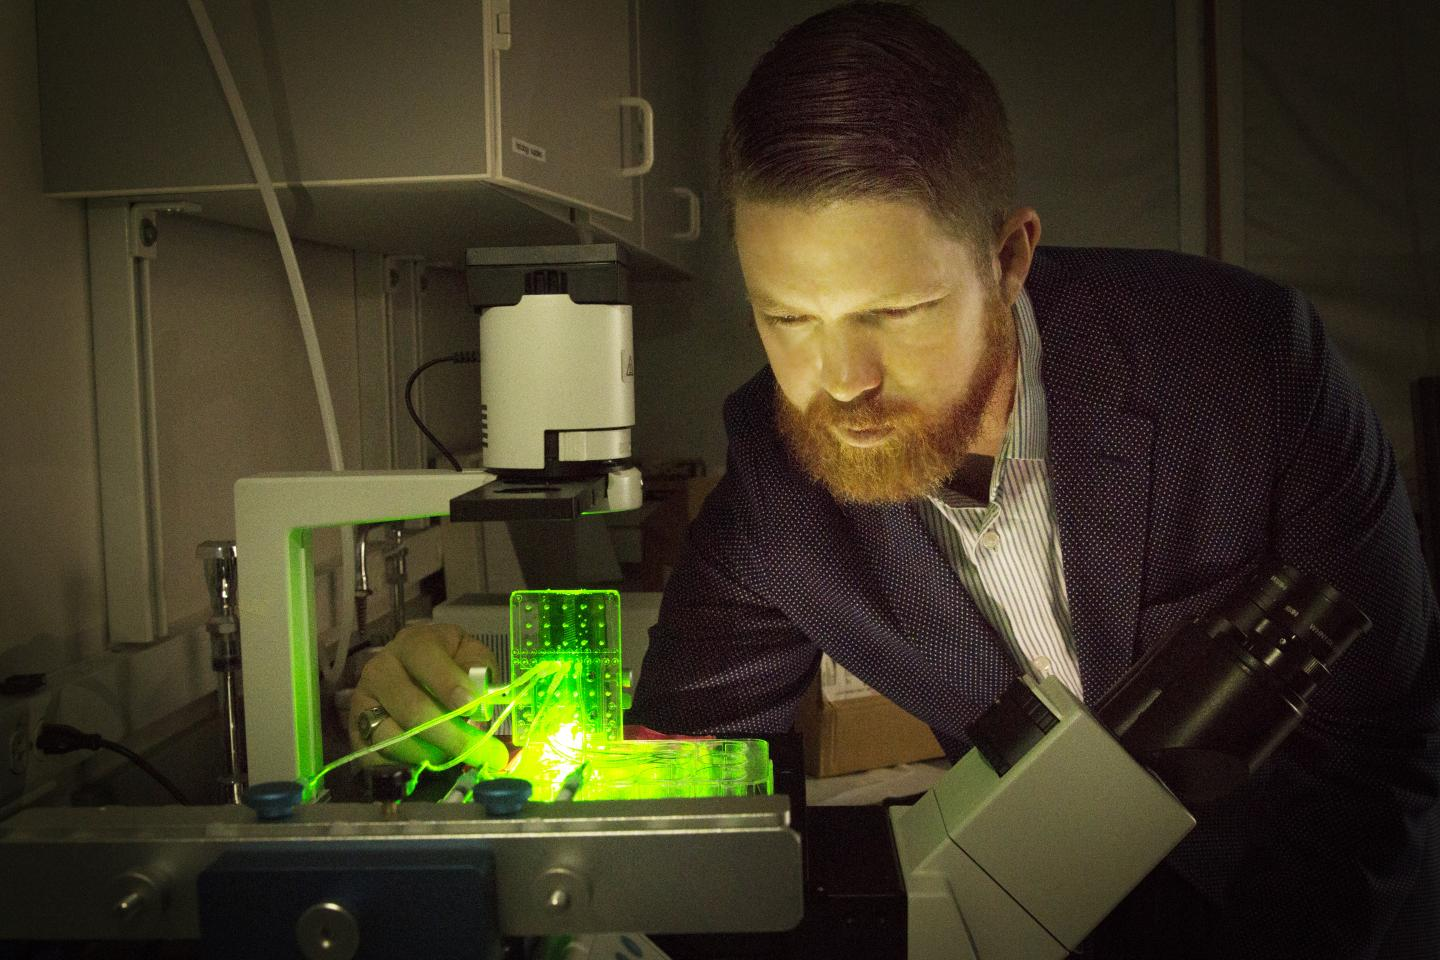 University of Utah biomedical engineering assistant professor Robby Bowles with a customised 3D bioprinter. Photo via Dan Hixson/University of Utah College of Engineering.